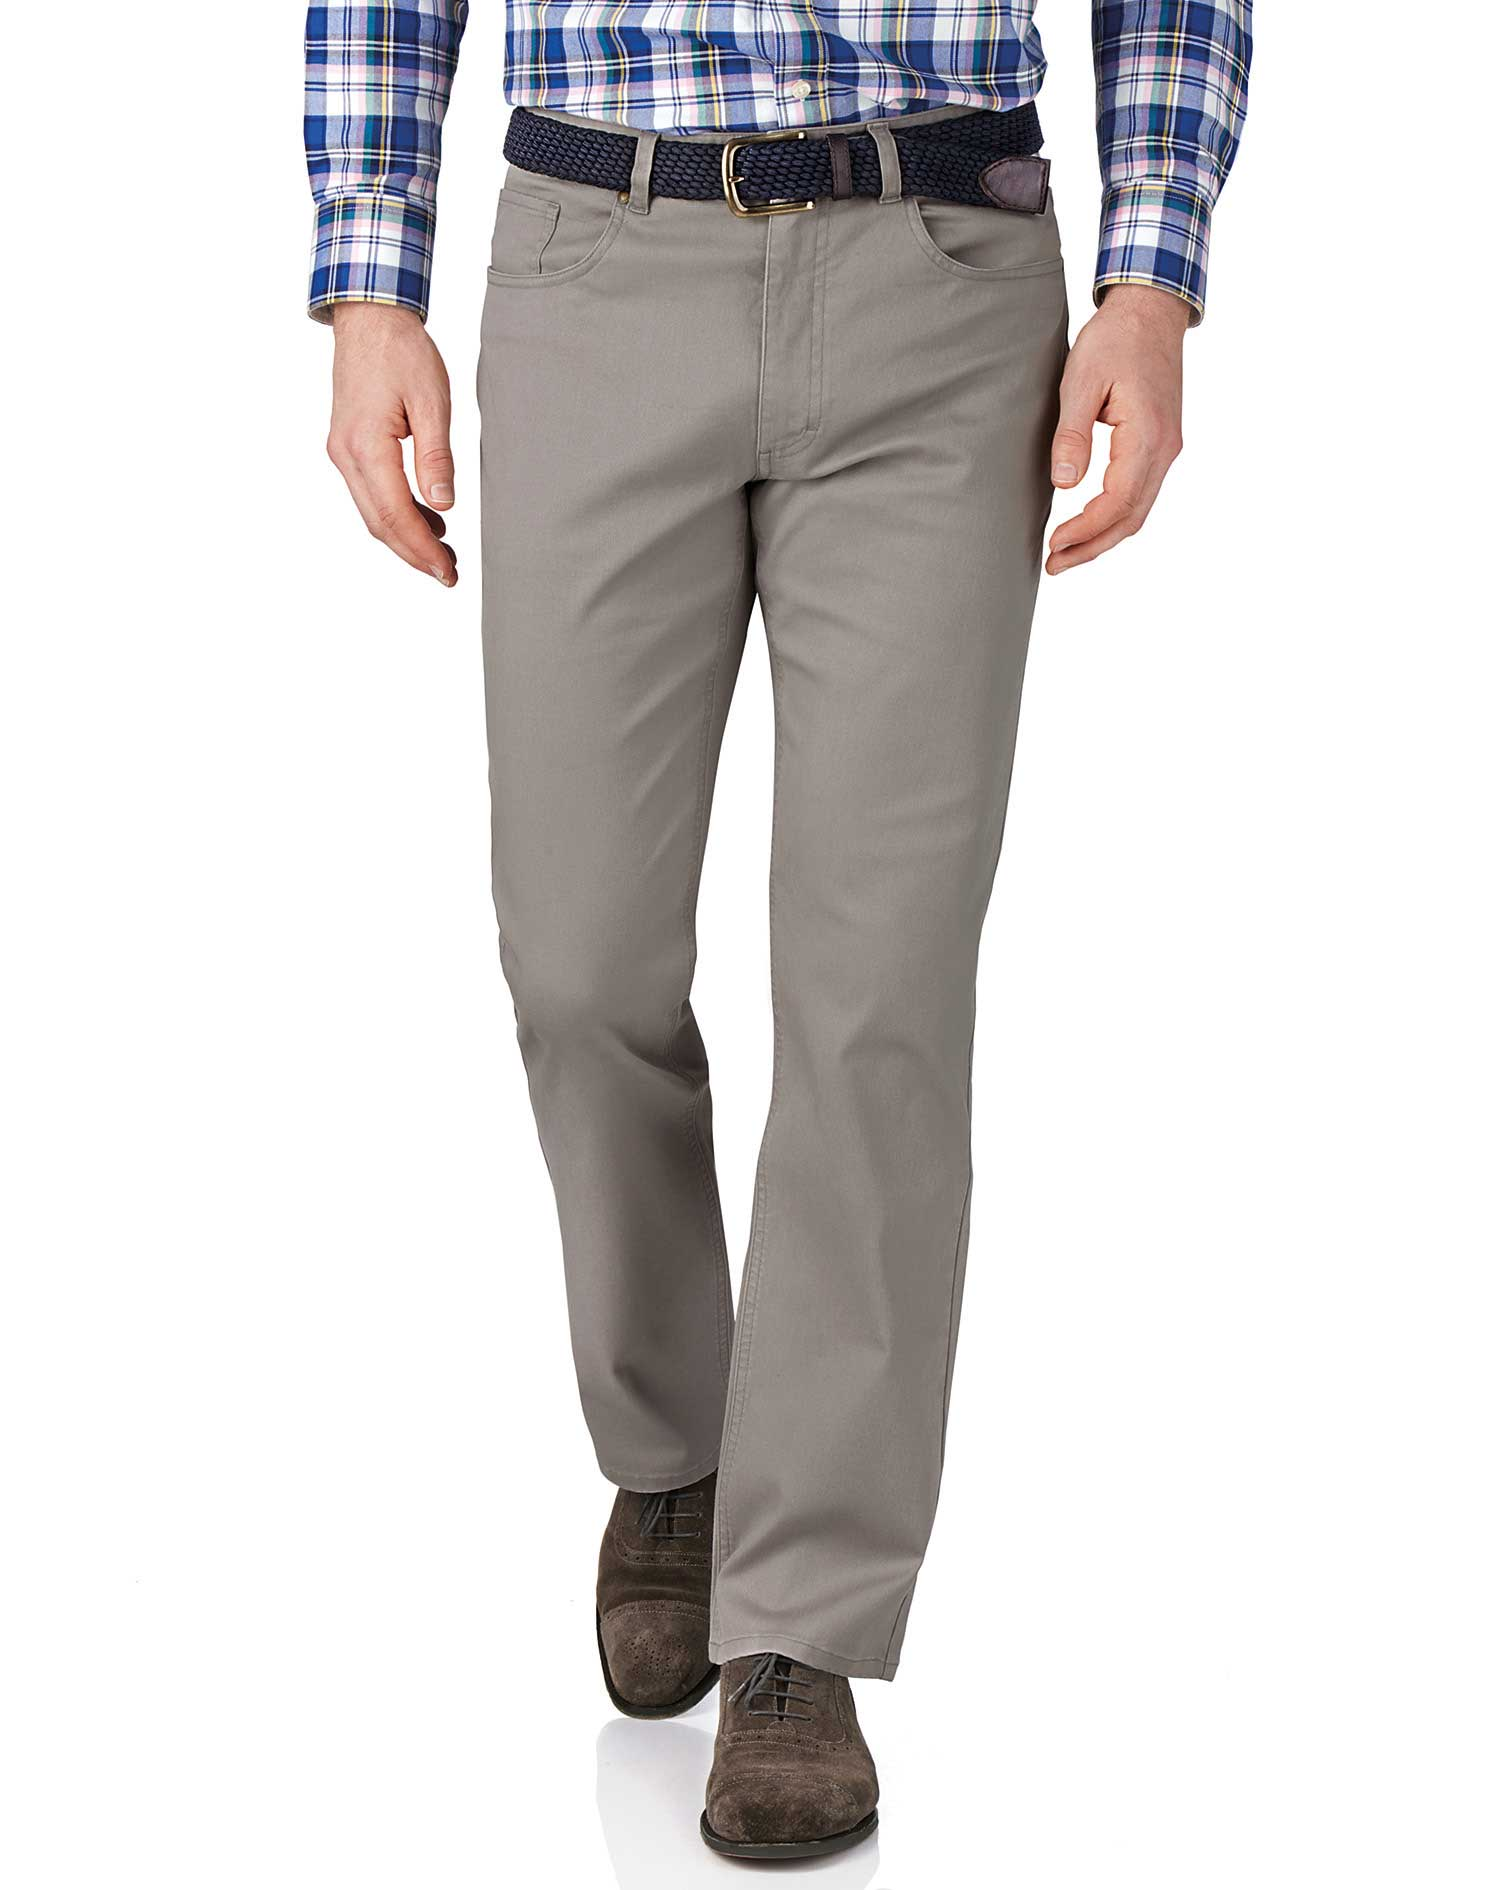 Silver Classic Fit Stretch Pique 5 Pocket Trousers Size W40 L34 by Charles Tyrwhitt